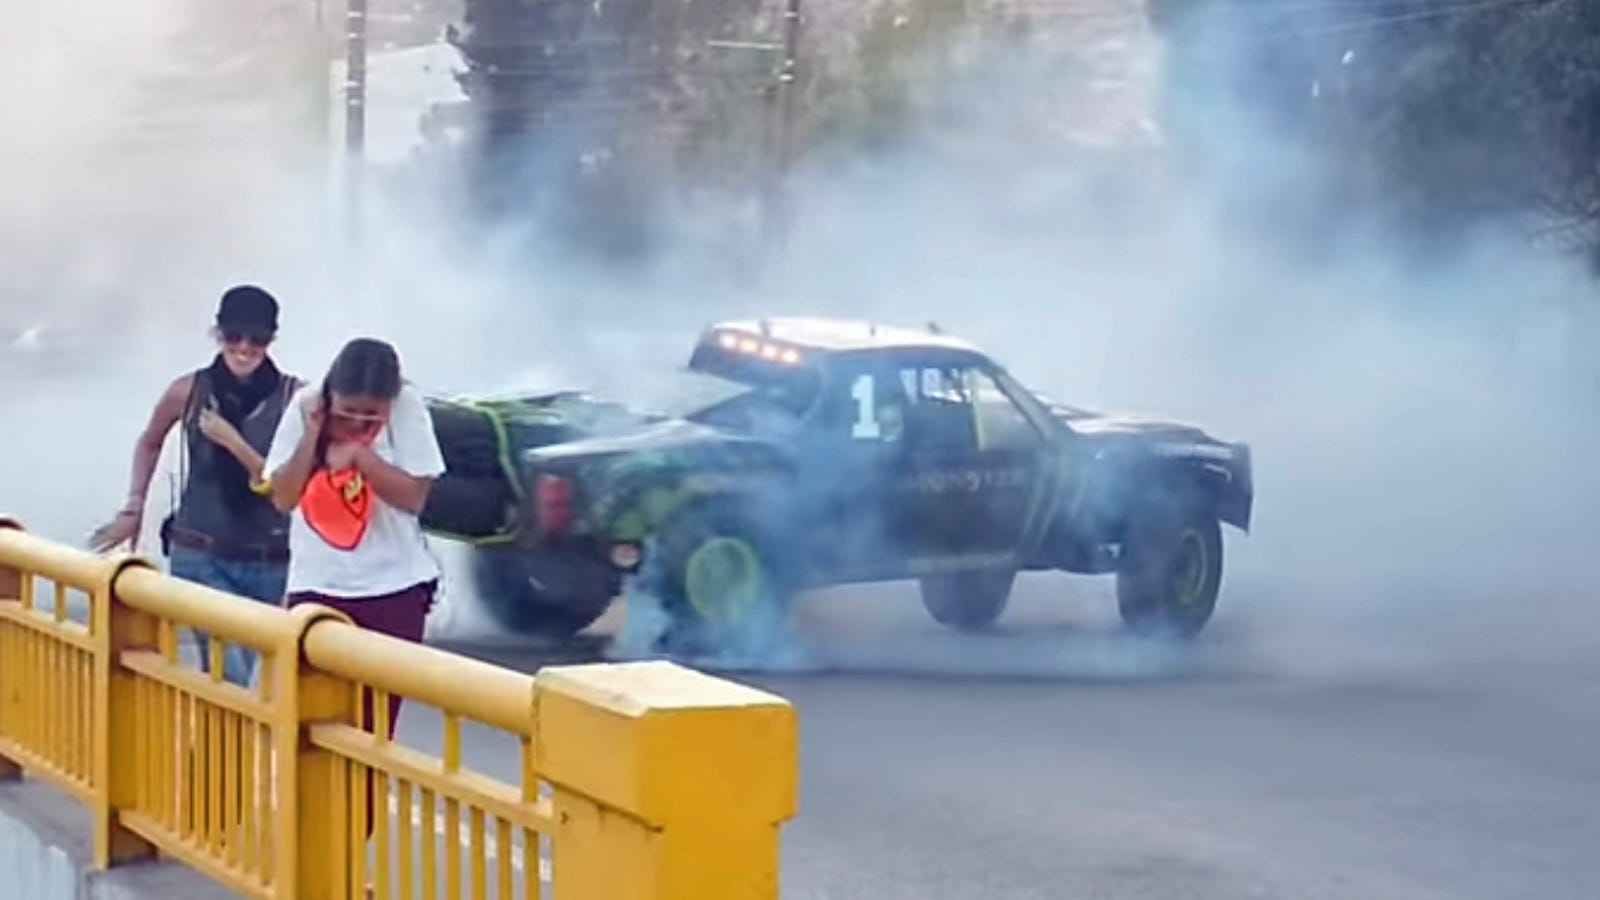 Truck Racers Are Tearing Up A Town Filming An Insane Stunt Movie